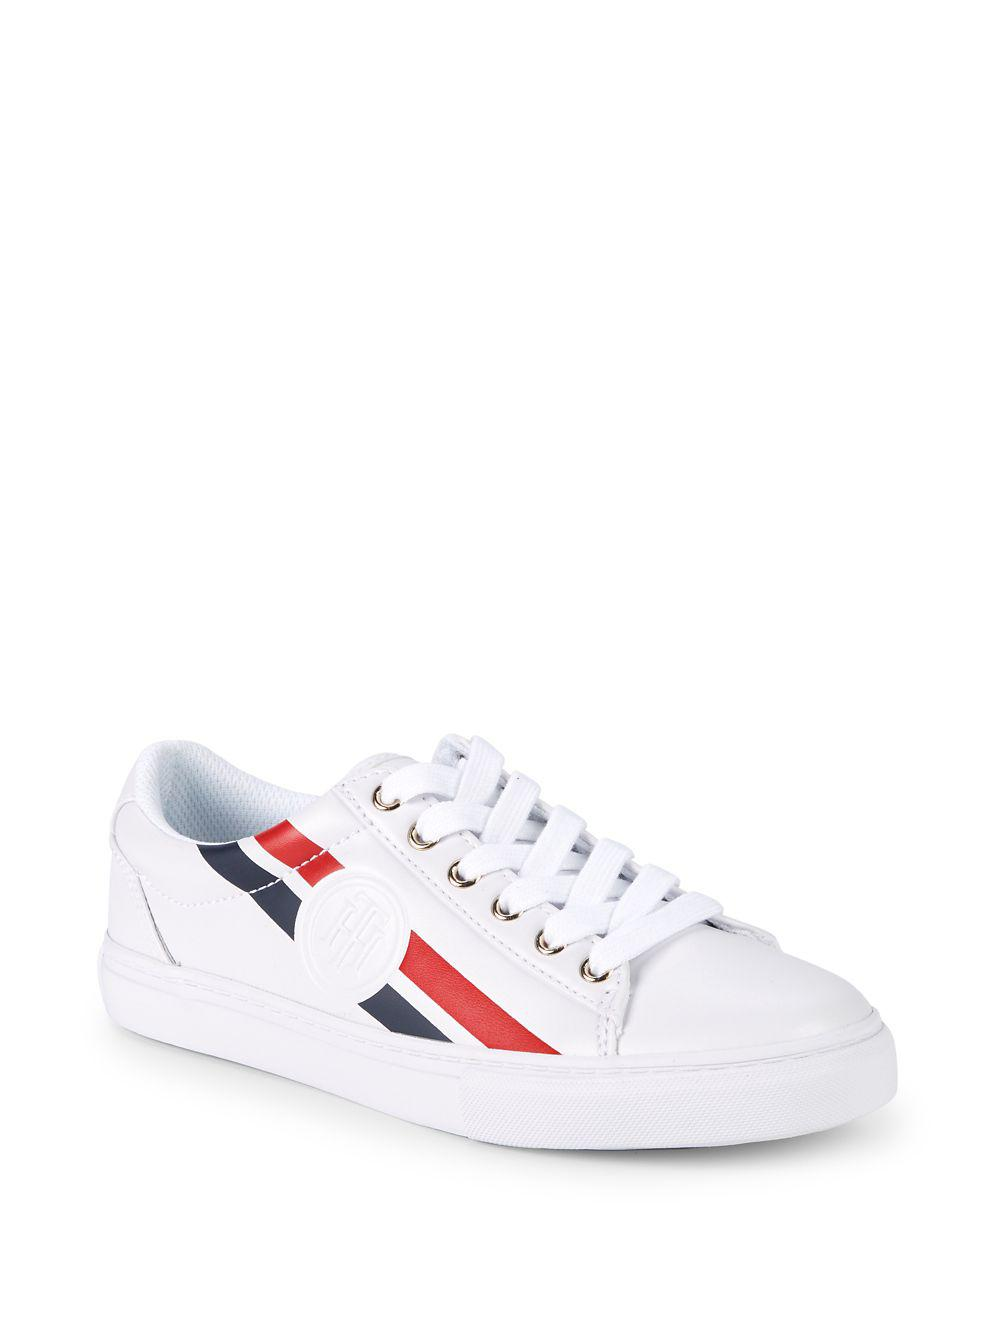 233ab08cd0e5de Lyst - Tommy Hilfiger Lindee Low-top Sneakers in White